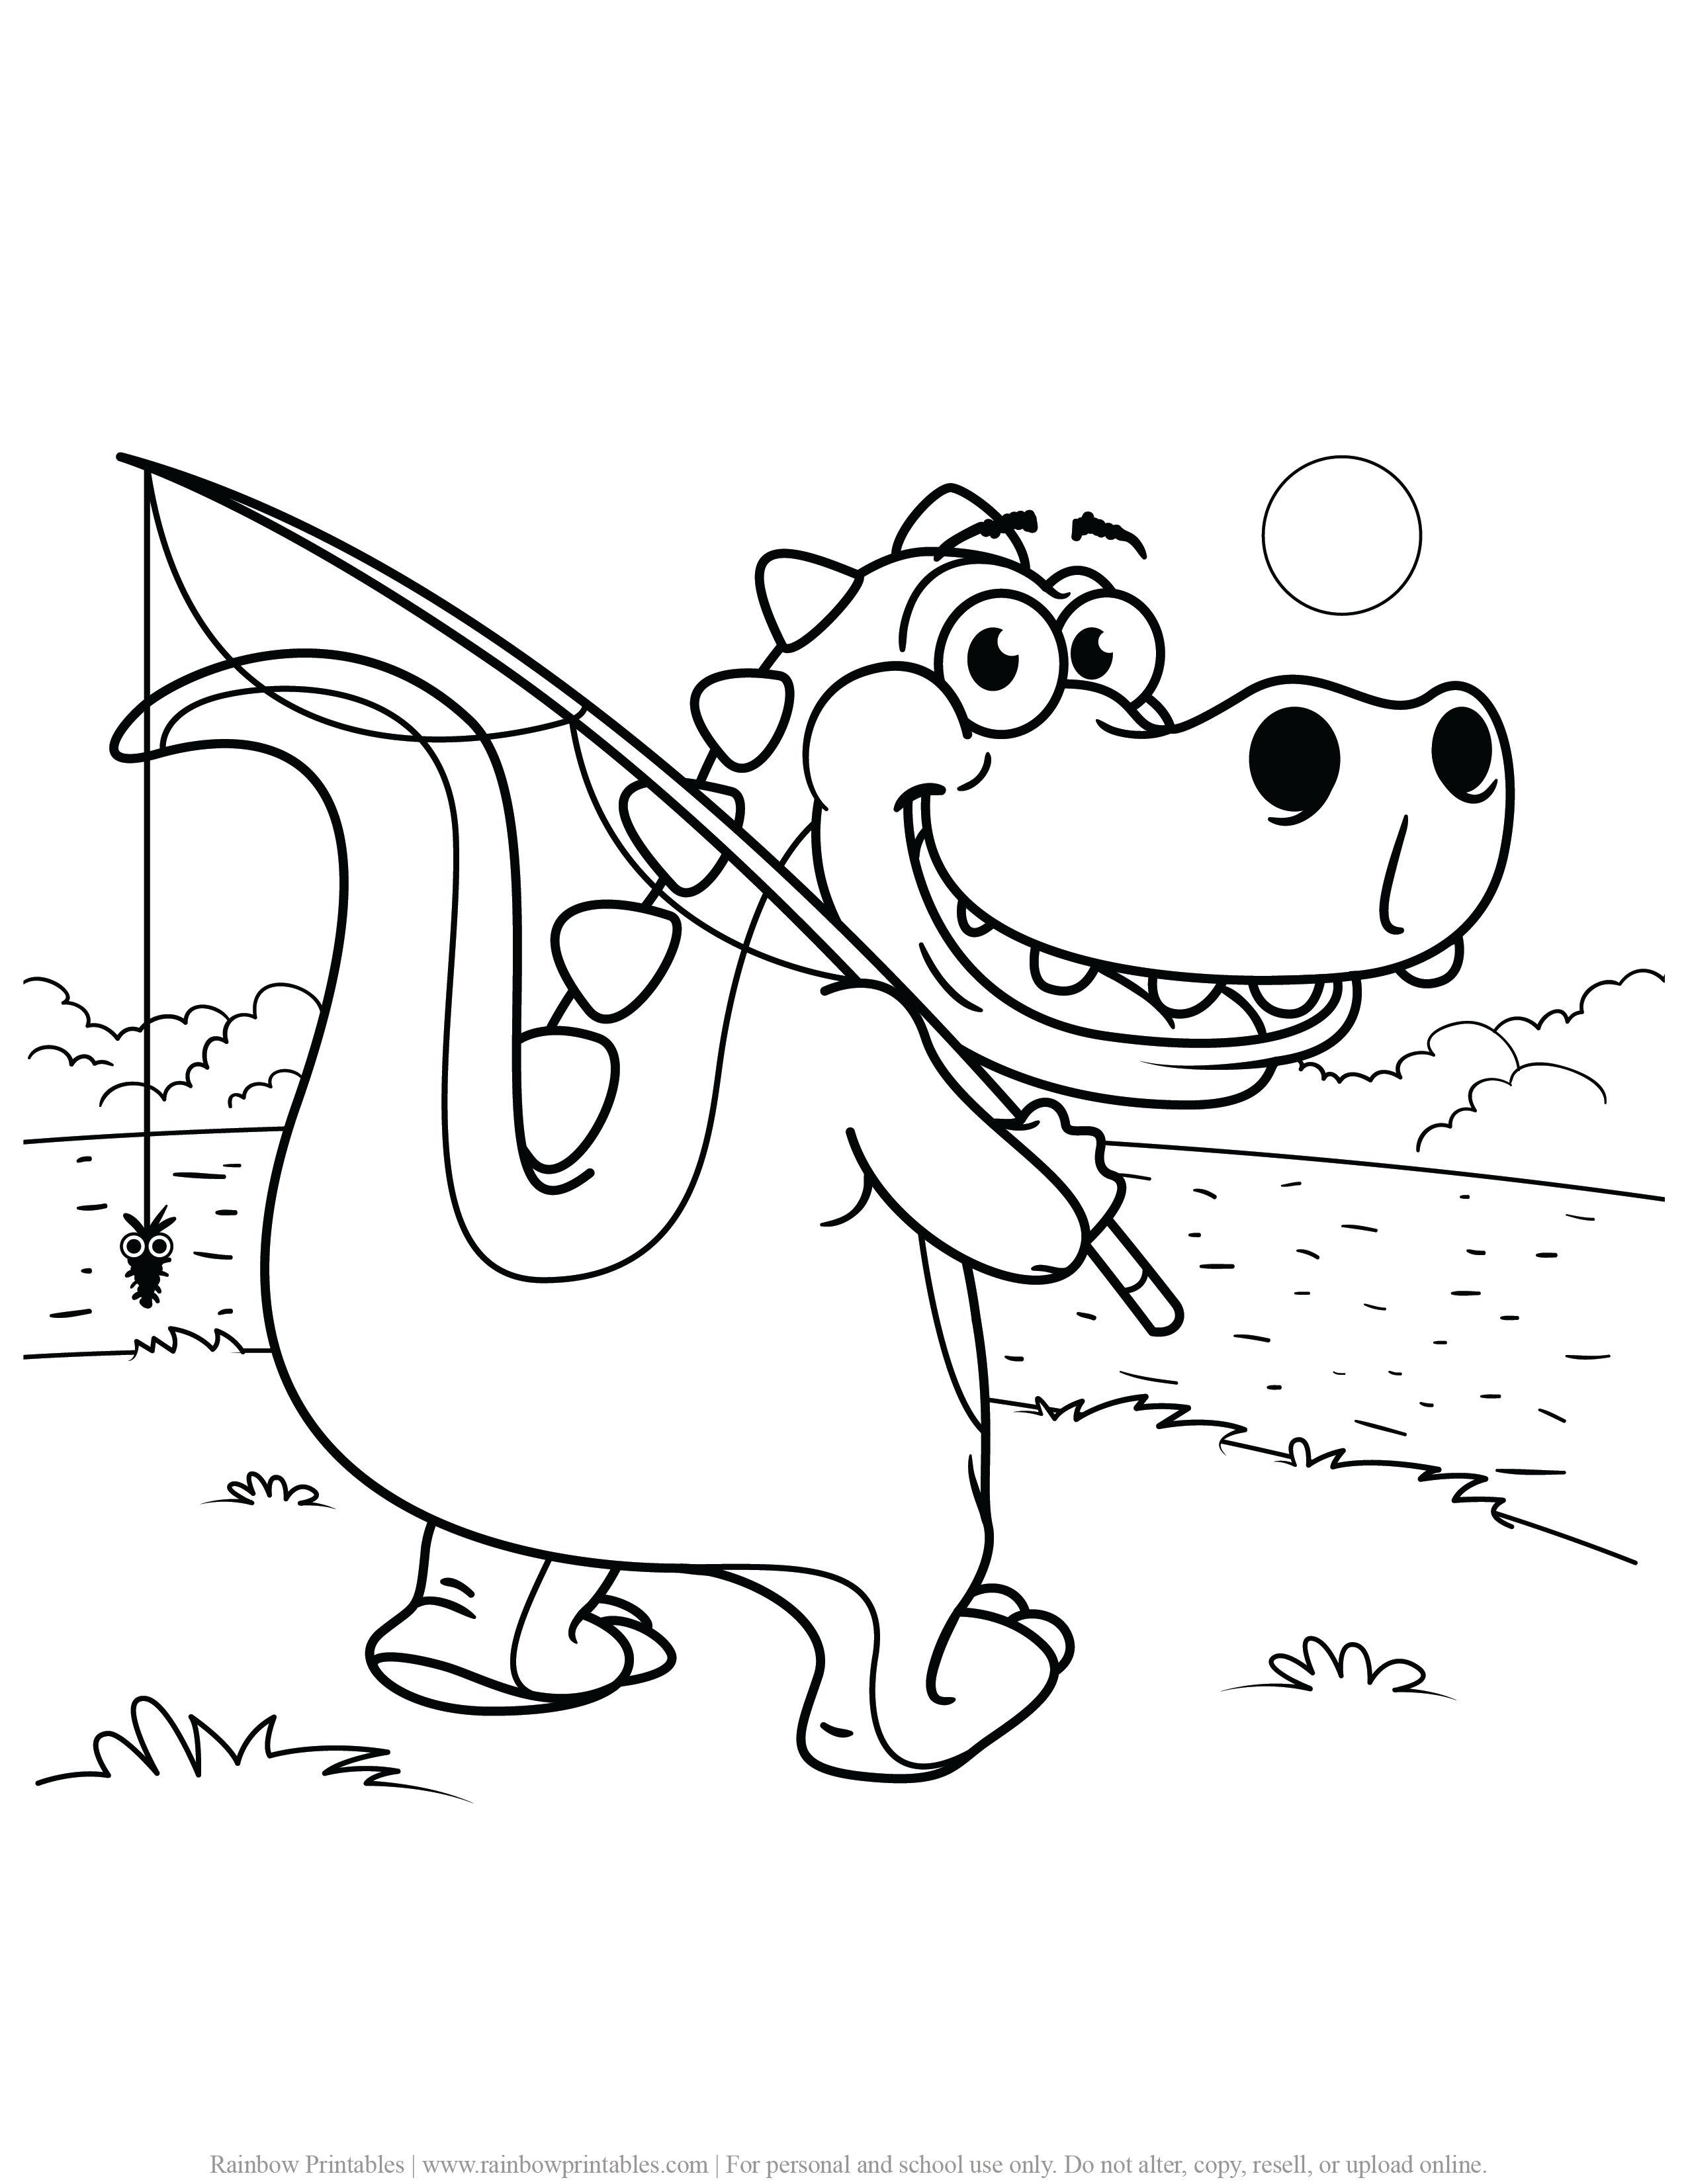 FREE DINOSAUR COLORING PAGES ACTIVITY FOR KIDS AND BOYS DINO DRAGON PRINTABLE-18